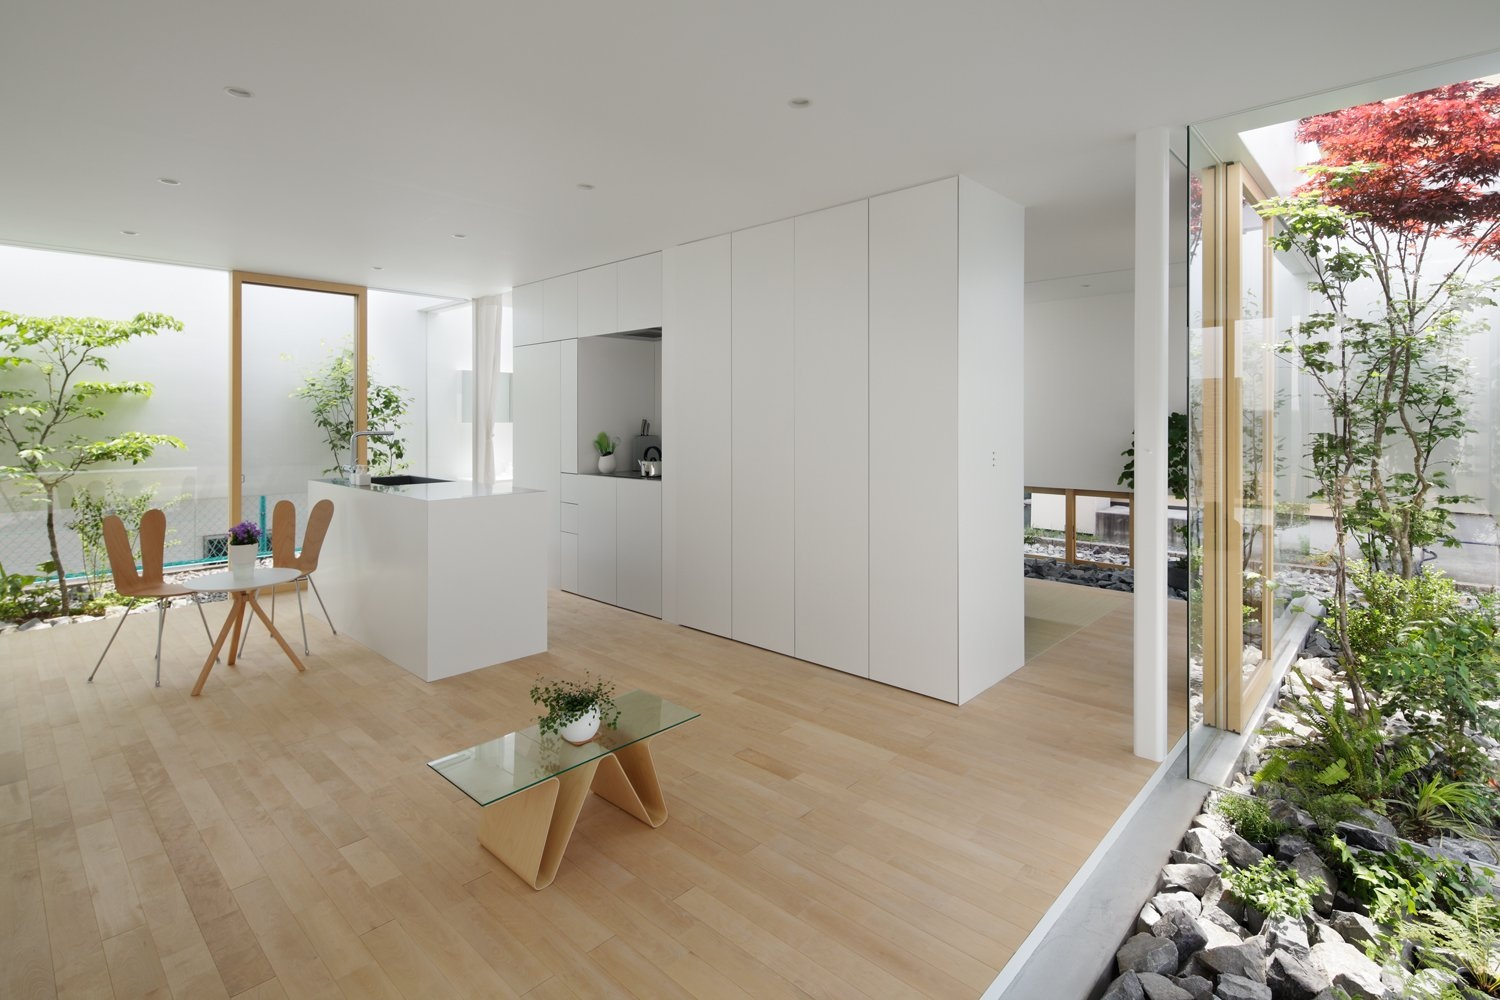 An Interior Zen Courtyard Is An Amazing Solution If Space Allows